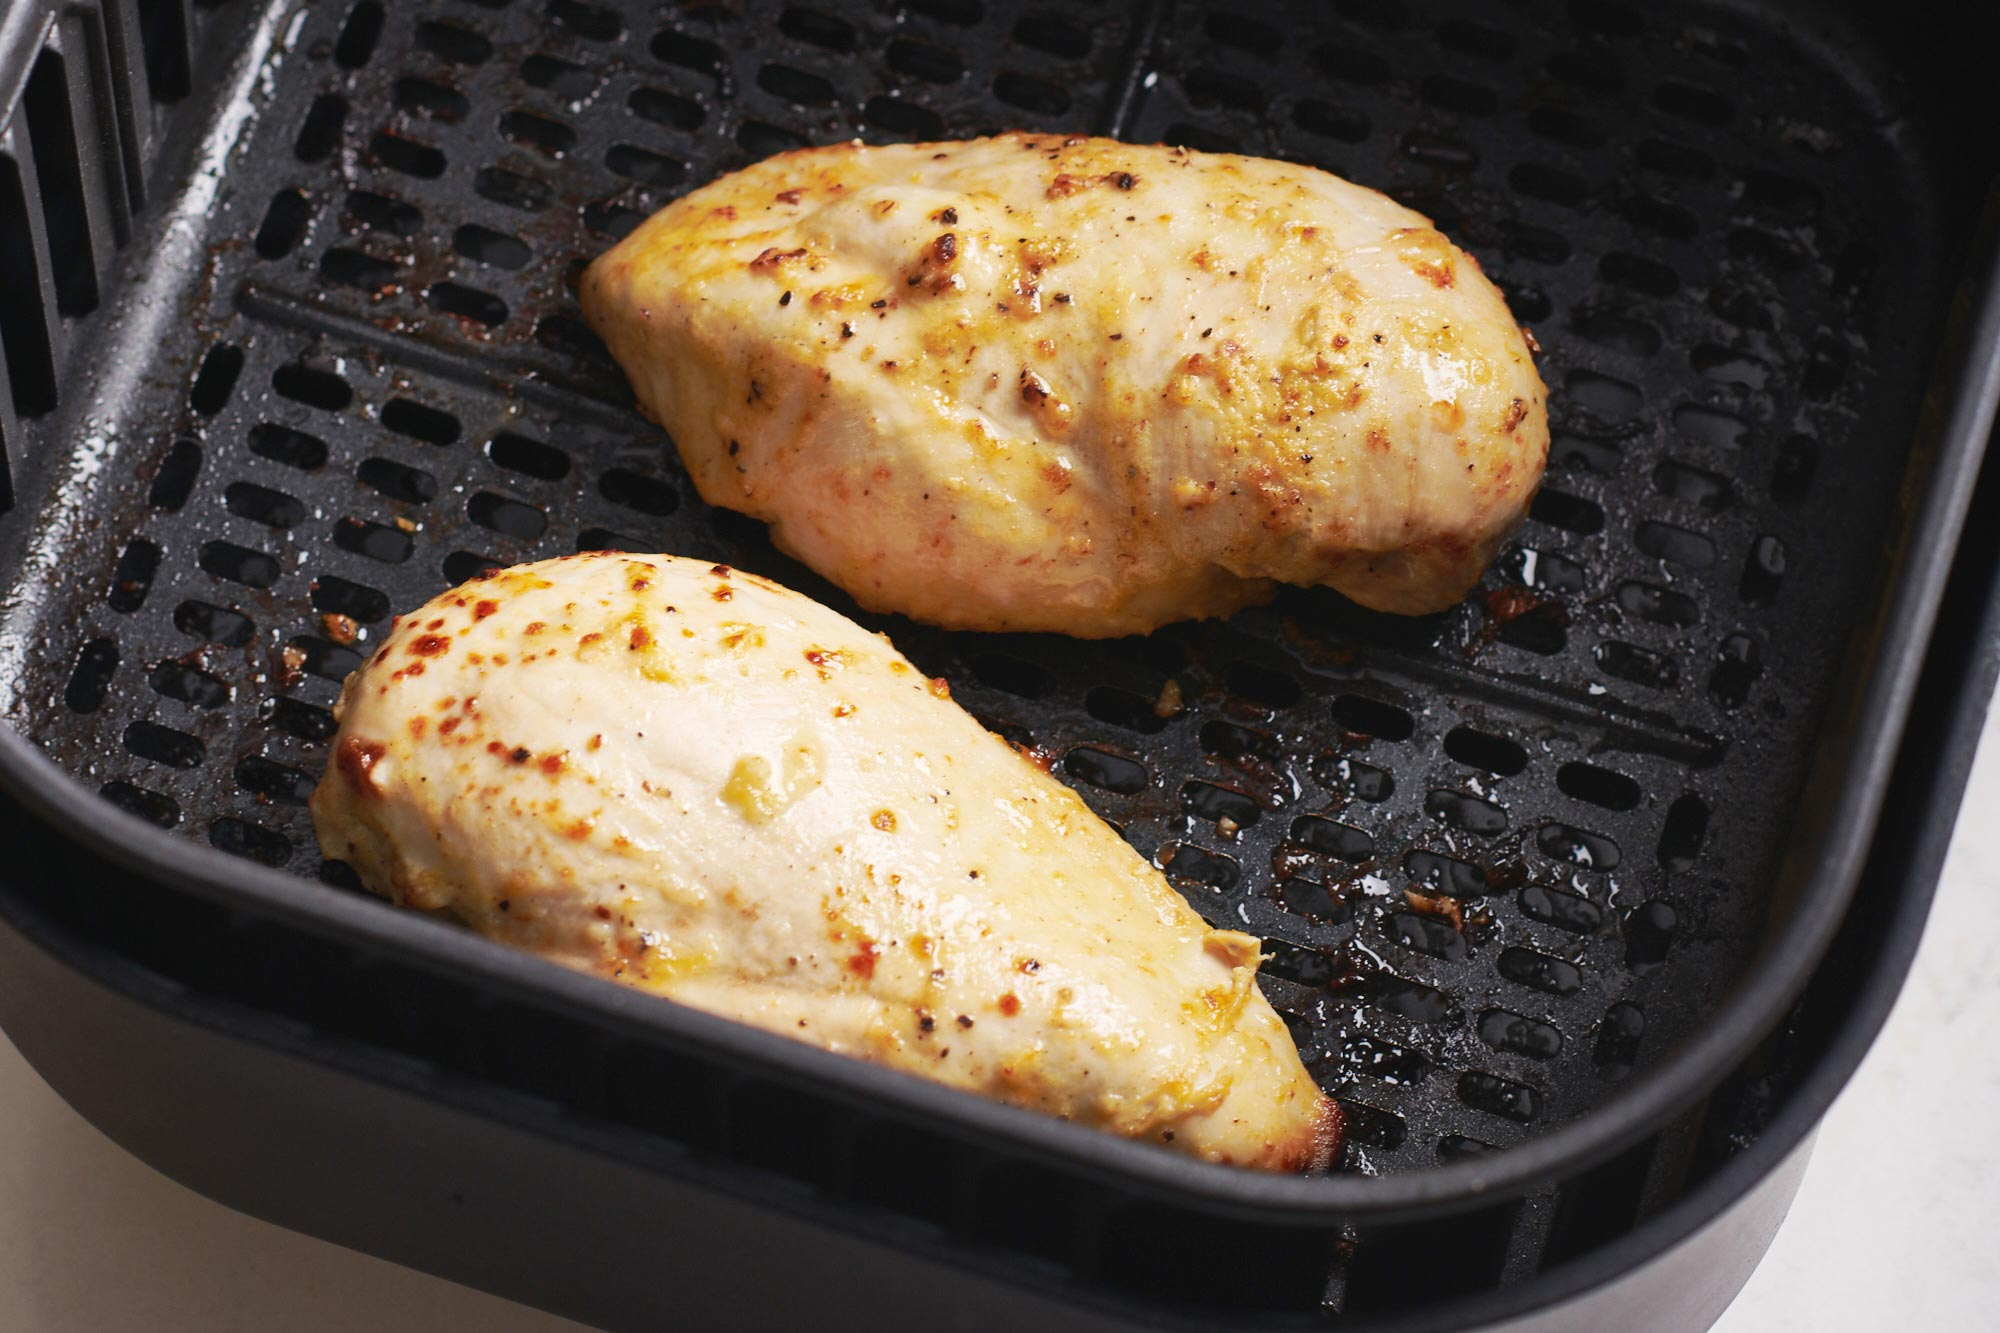 Lemon Garlic Air Fryer Chicken Breasts Recipe The Mom 100